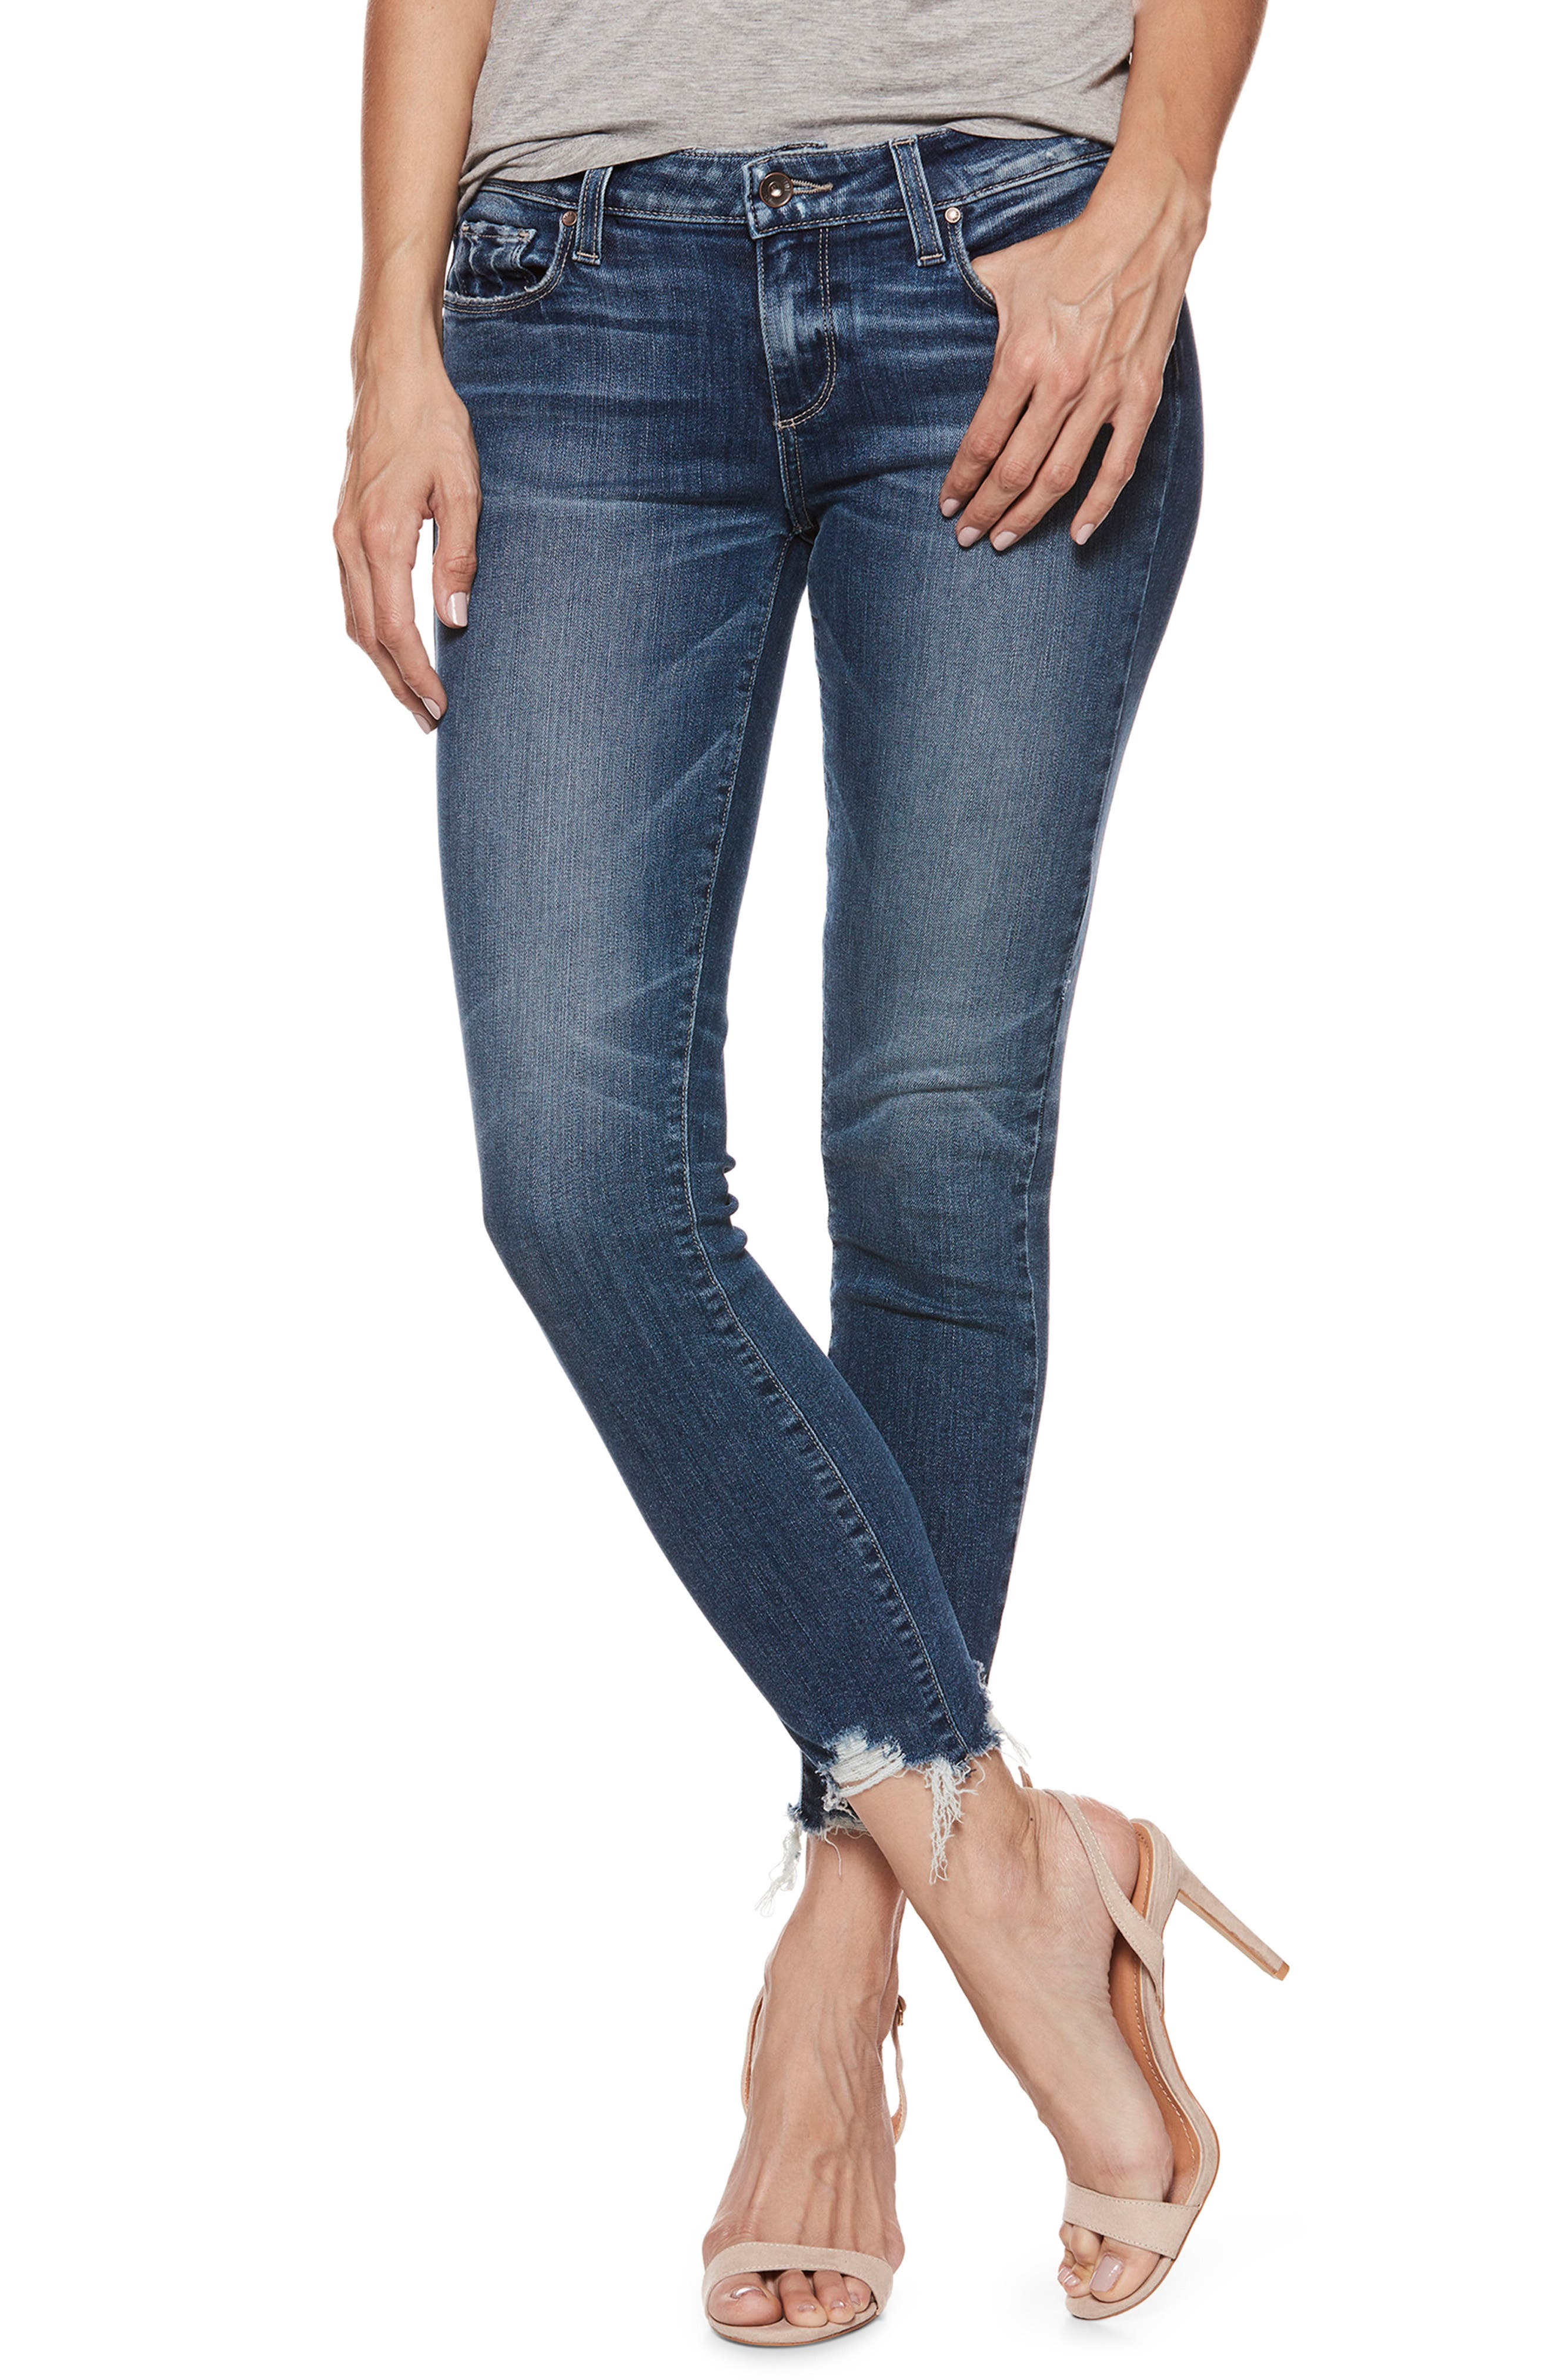 Transcend Vintage - Verdugo Ankle Skinny Jeans,                             Main thumbnail 1, color,                             Malibu Super Distressed